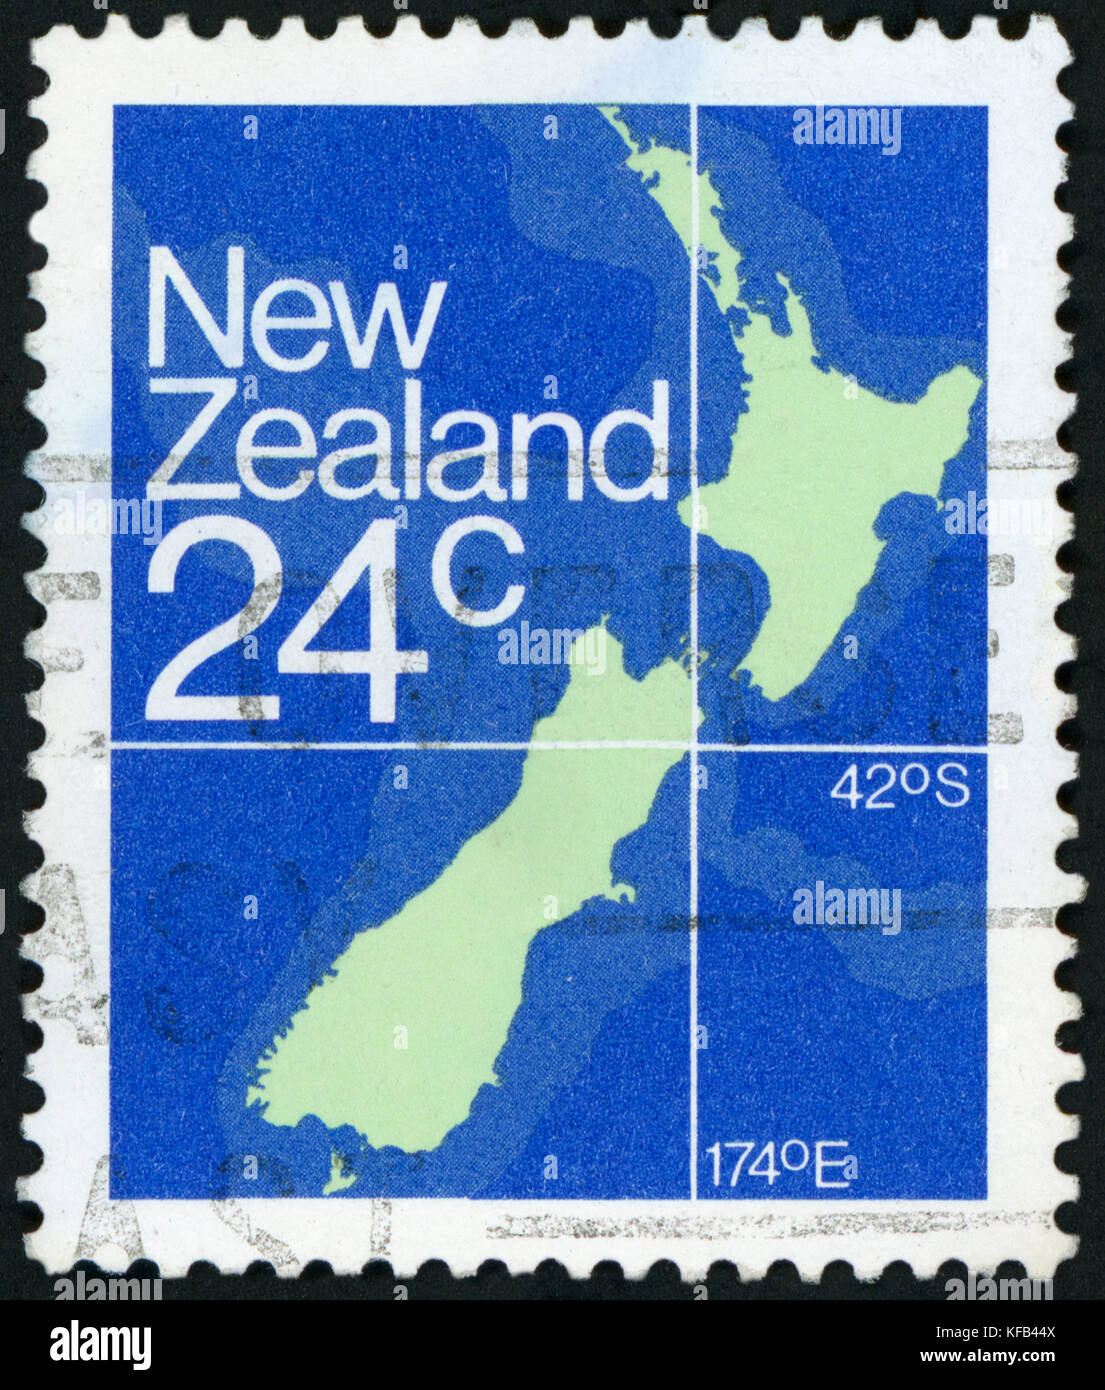 NEW ZEALAND - CIRCA 1982: A stamp printed in New Zealand shows Map of New Zealand, circa 1982. - Stock Image